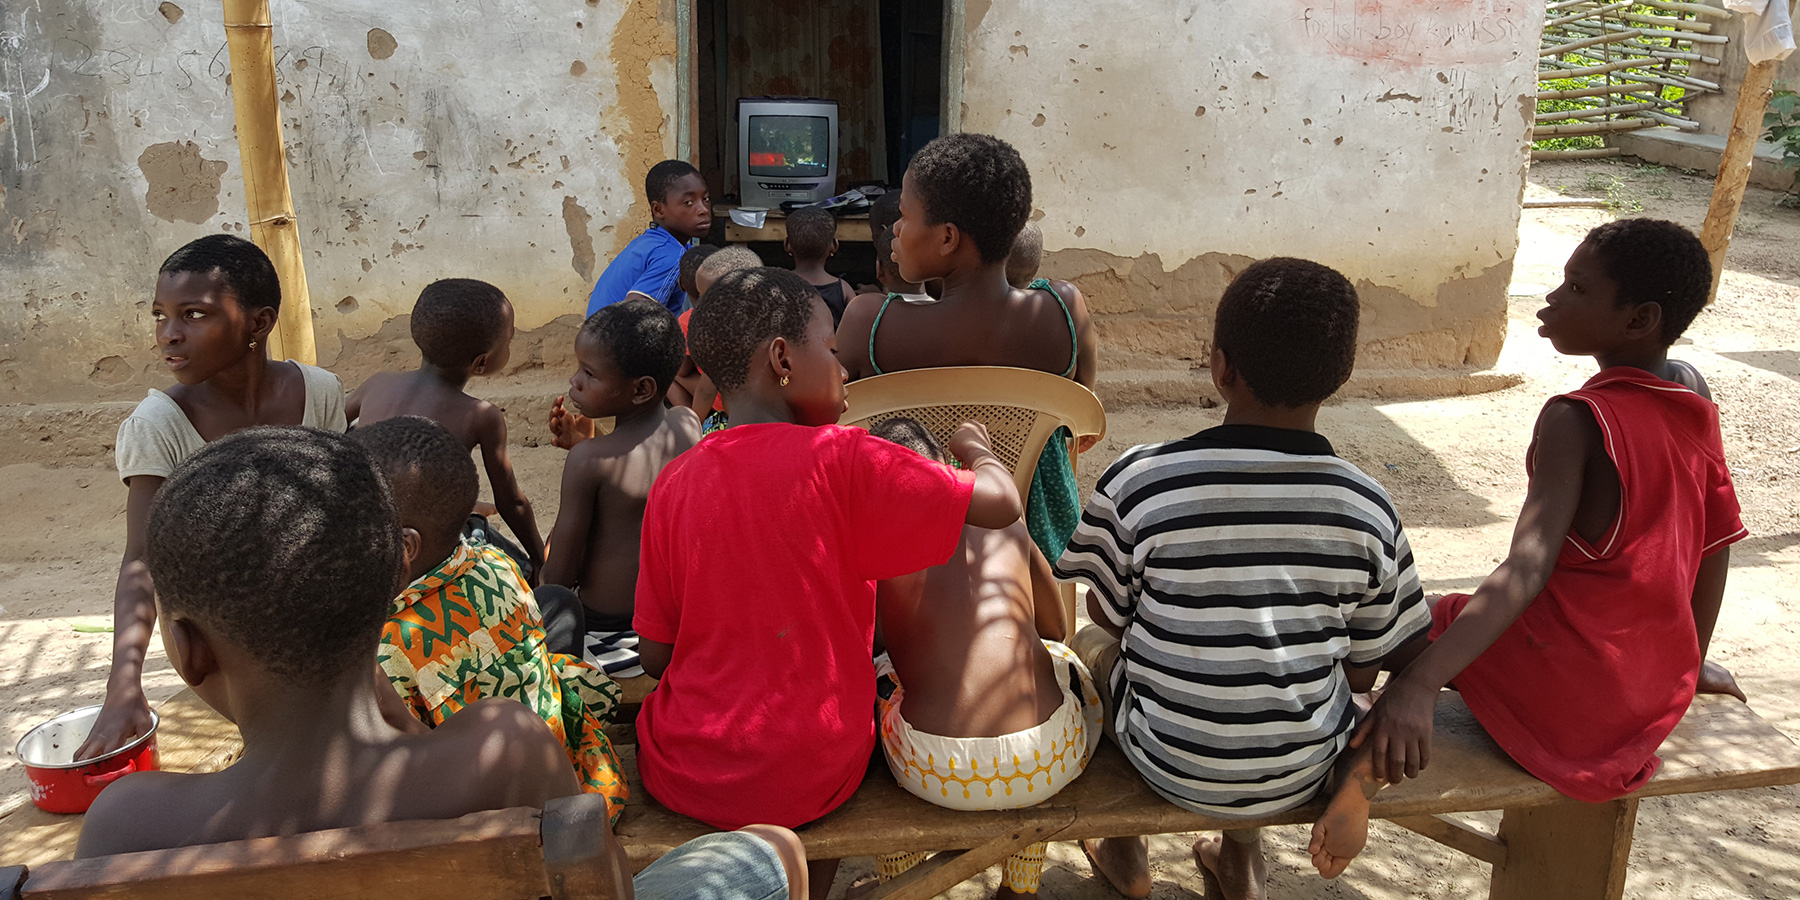 Young people gather to watch a TV show from an old box television set in rural Africa.